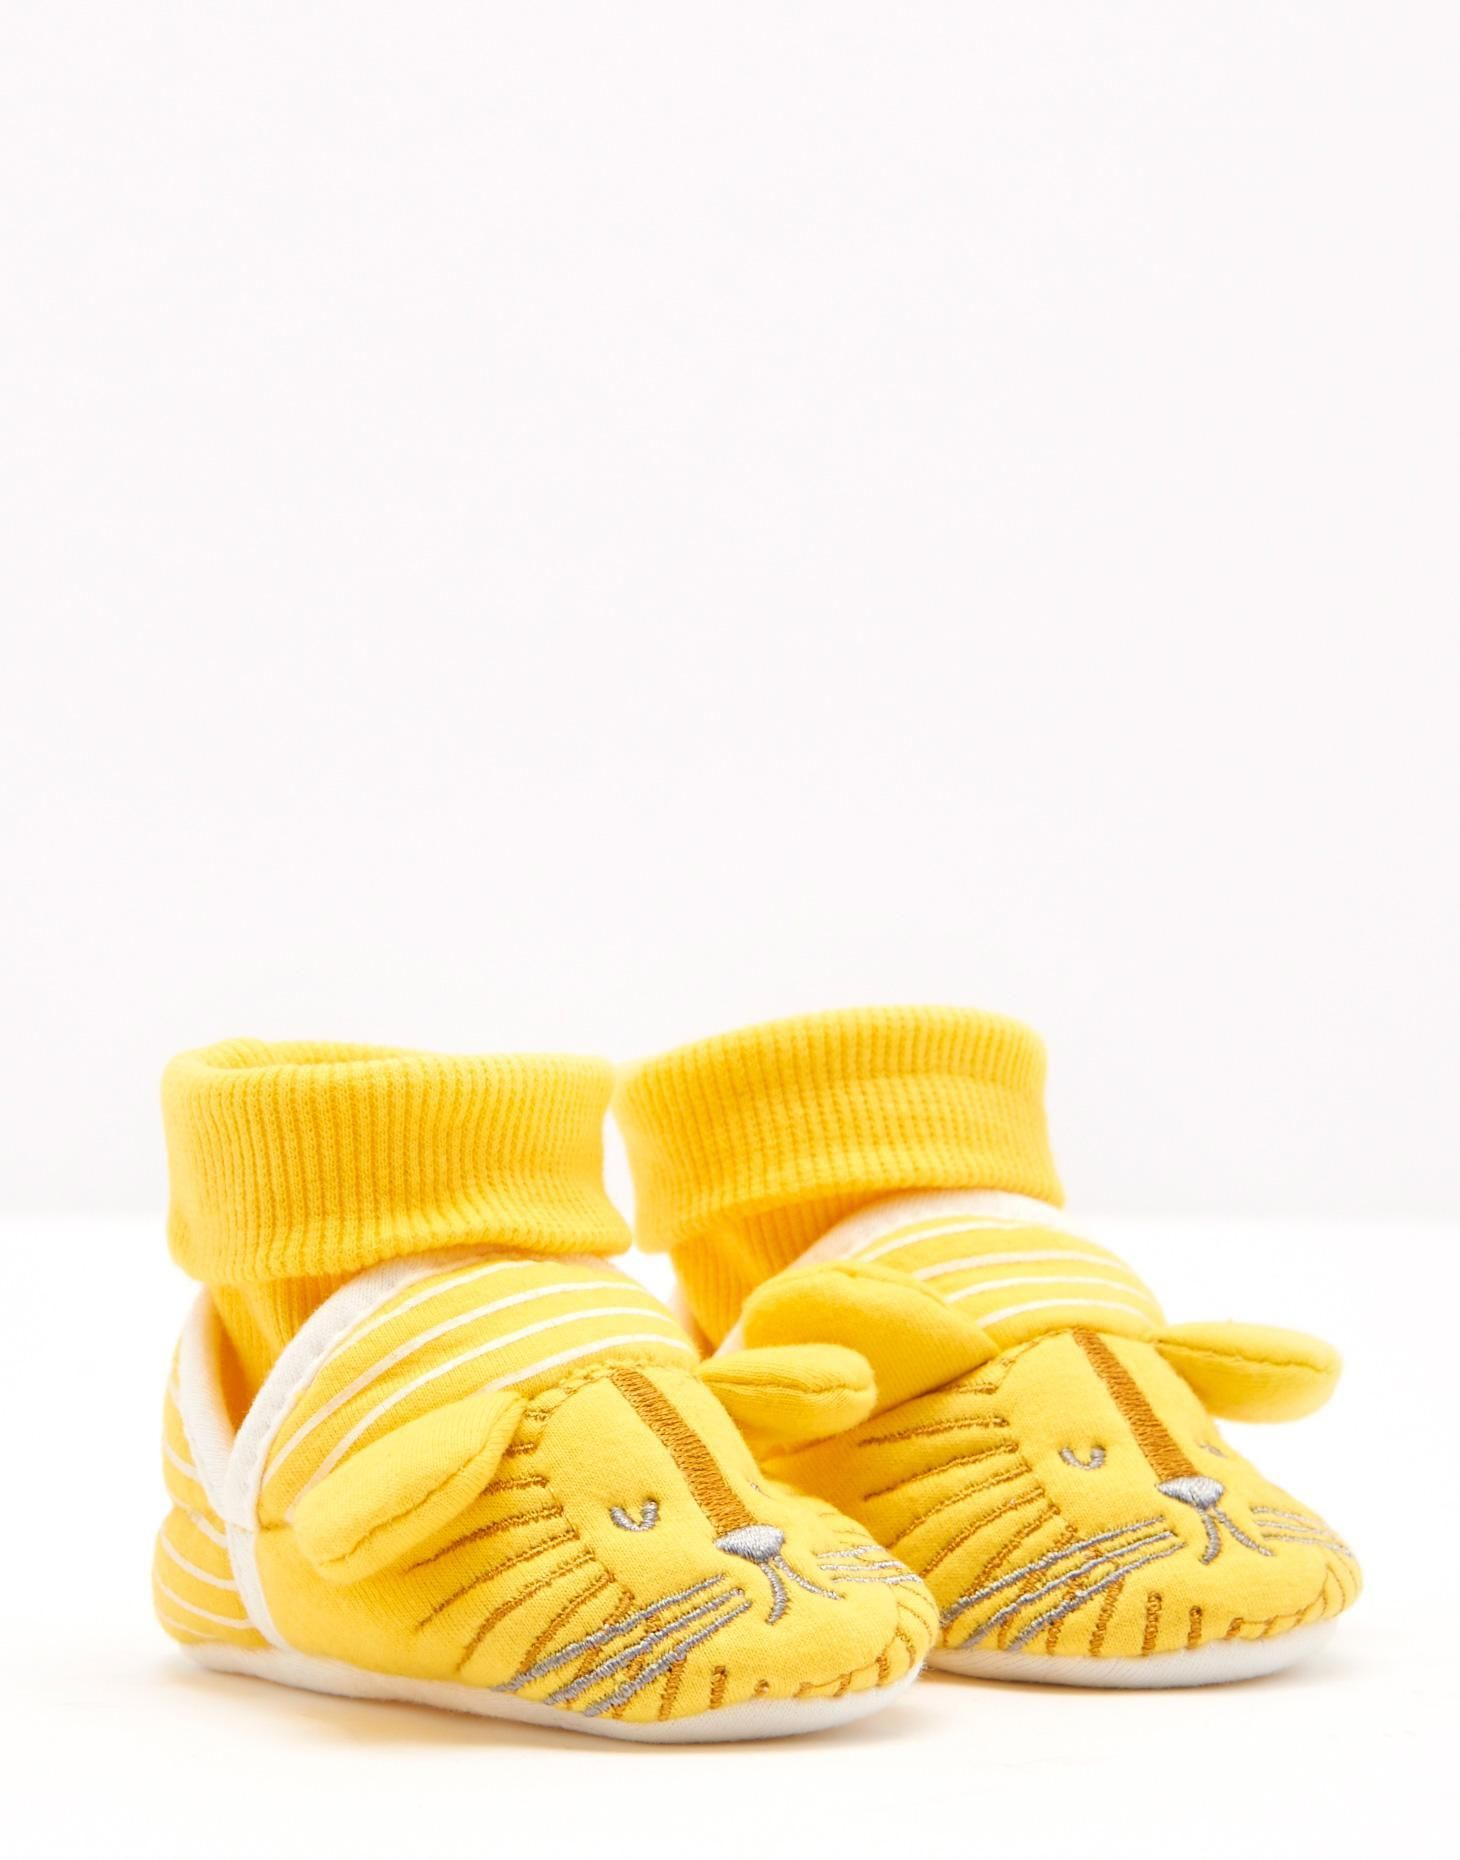 1c3c668e712 Nipper Slippers | Babs | Baby gift box, New baby products, Baby ...